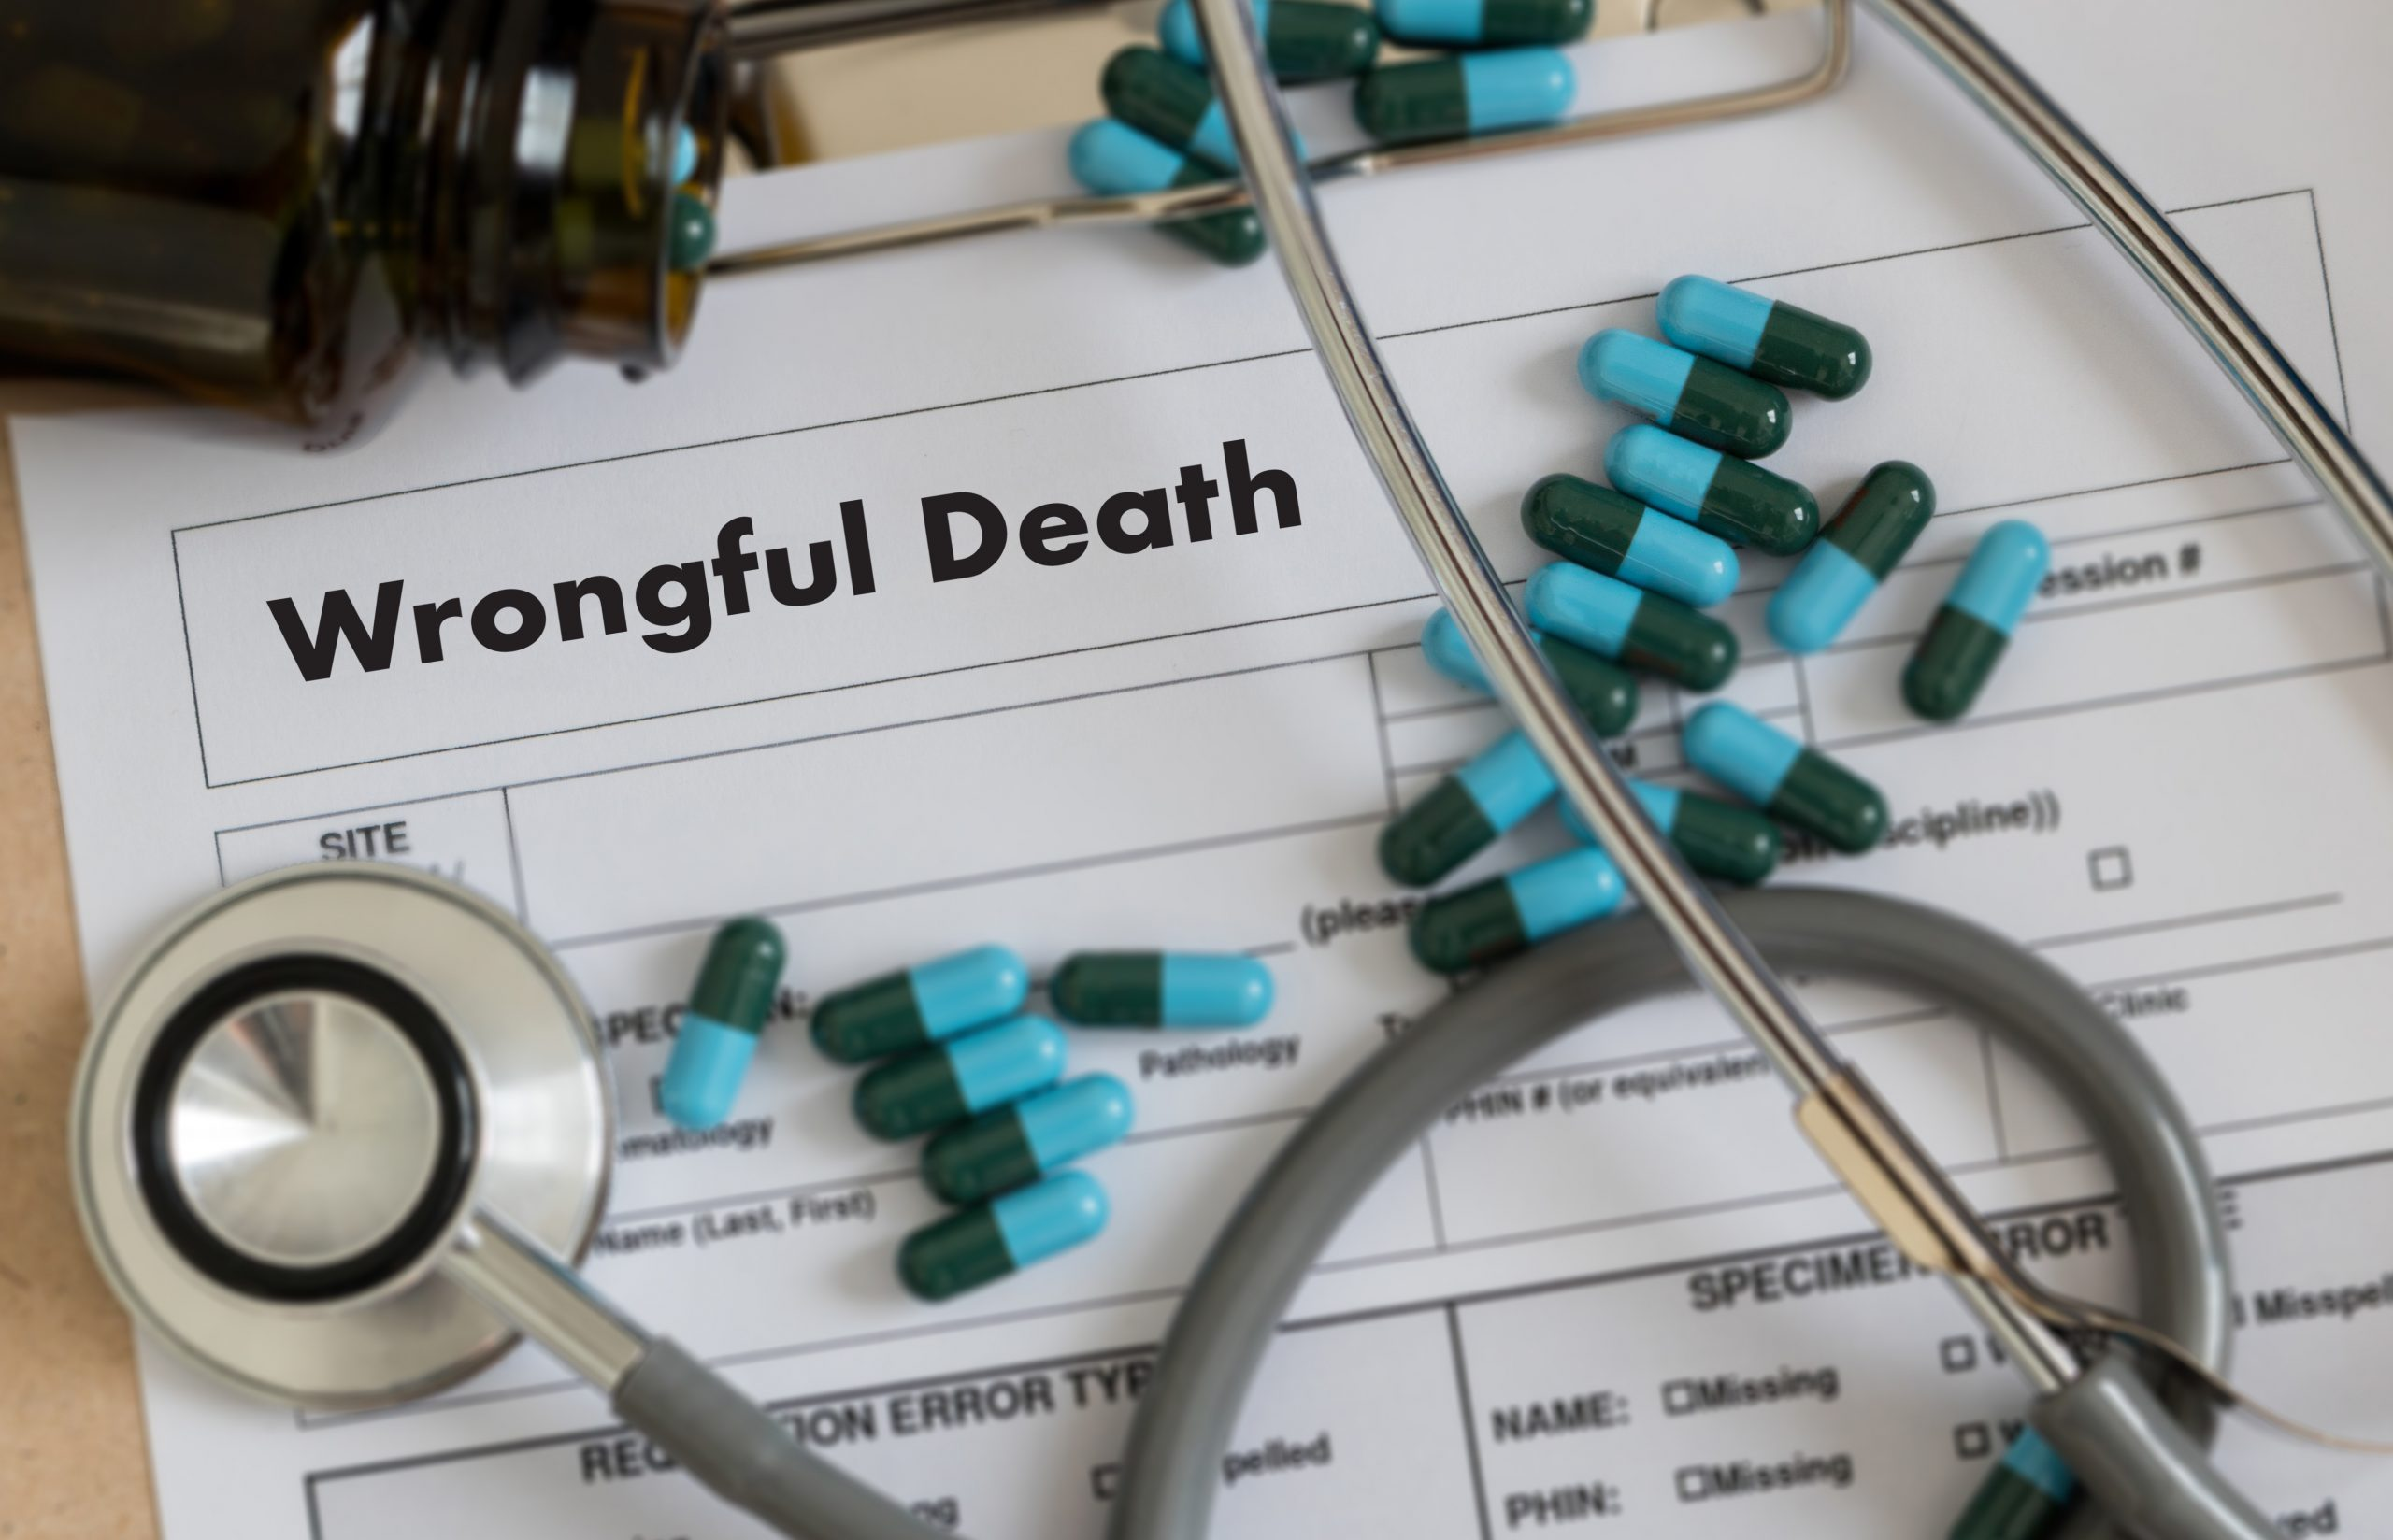 Wrongful death form, pills and a stethoscope